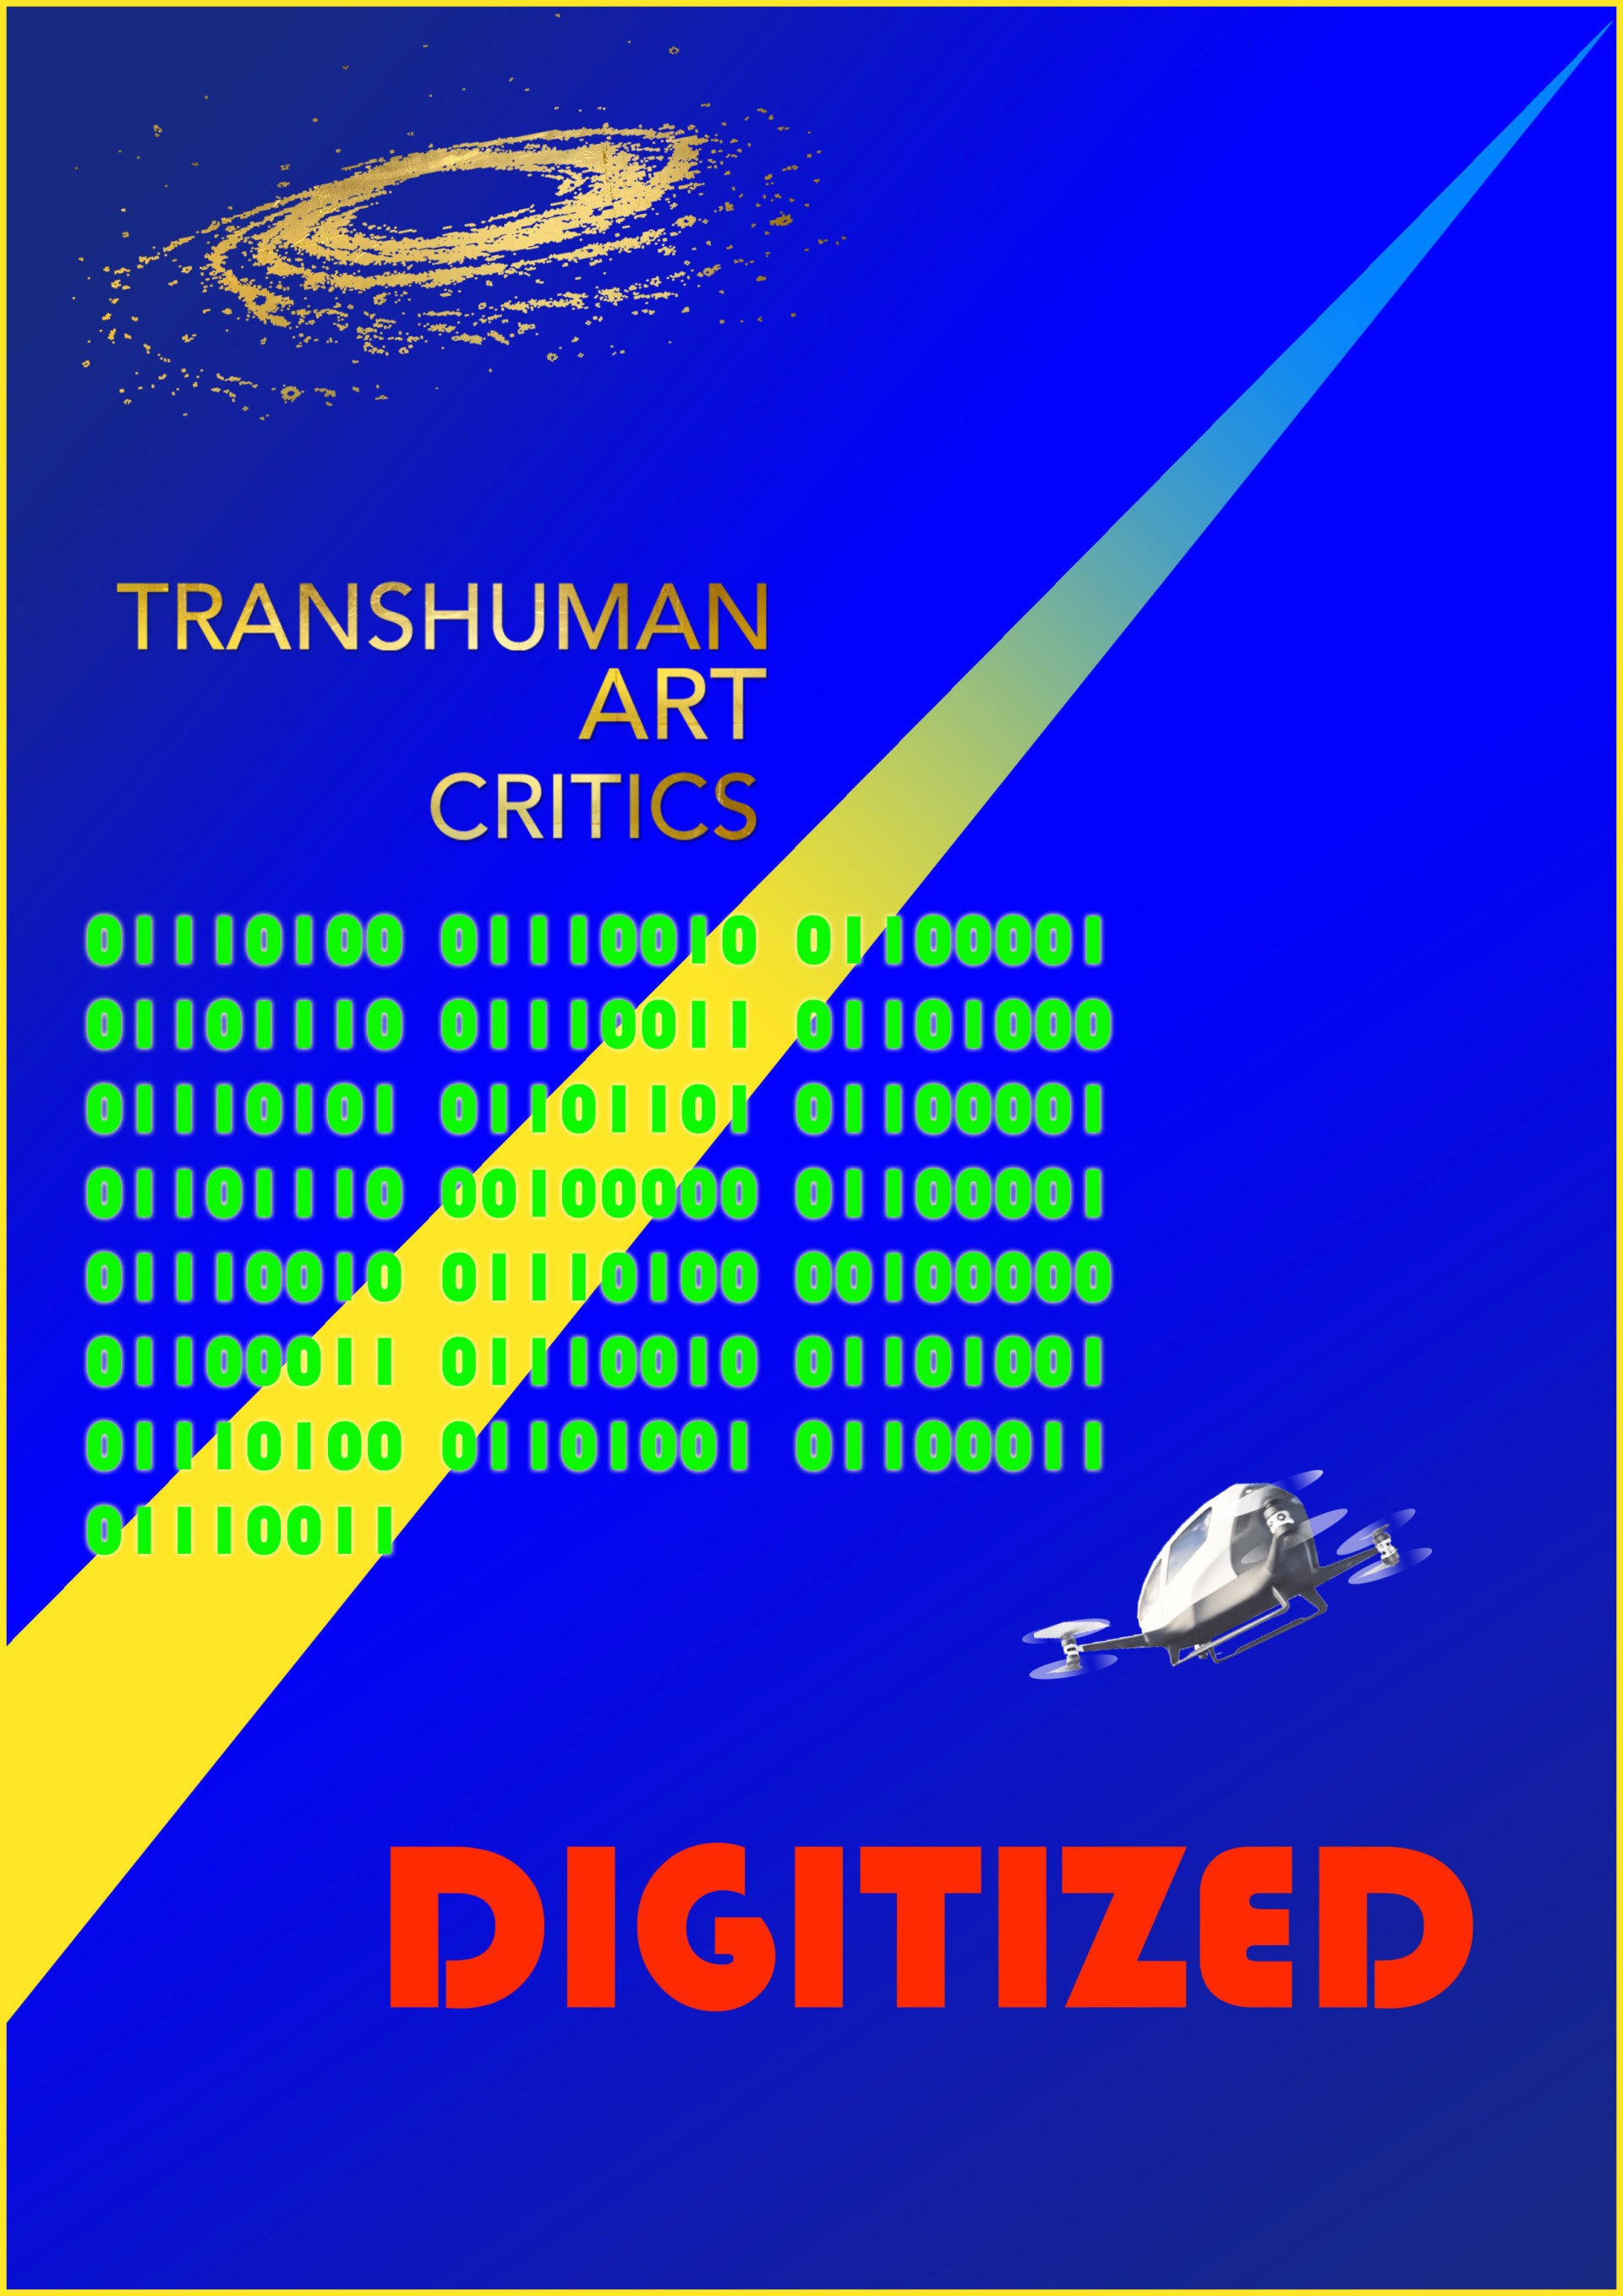 TRANSHUMAN ART CRITICS EDITIONS